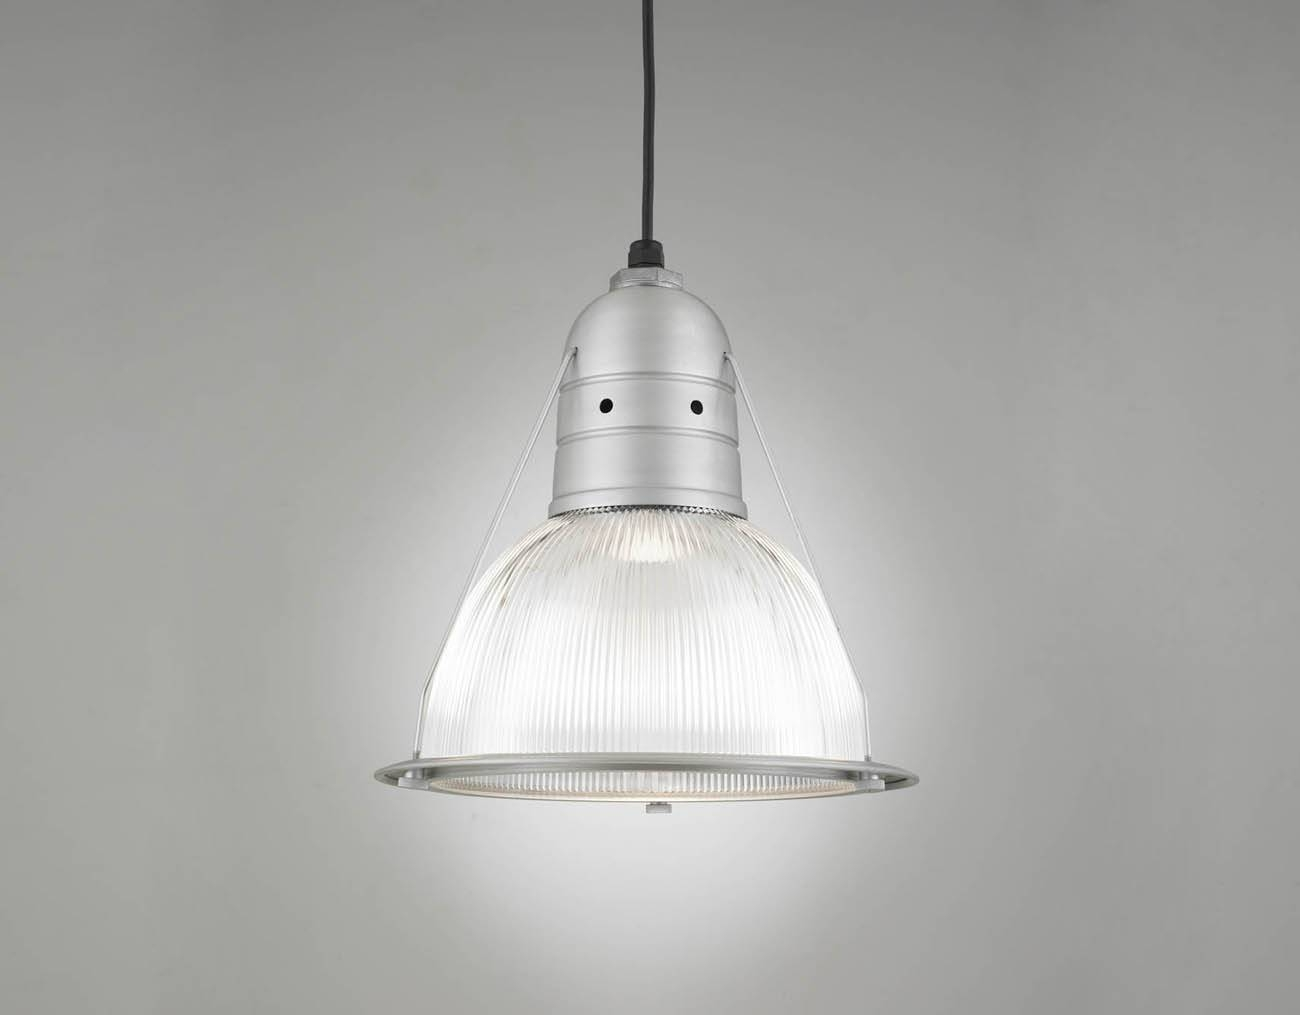 Popular Photo of Commercial Hanging Lights Fixtures